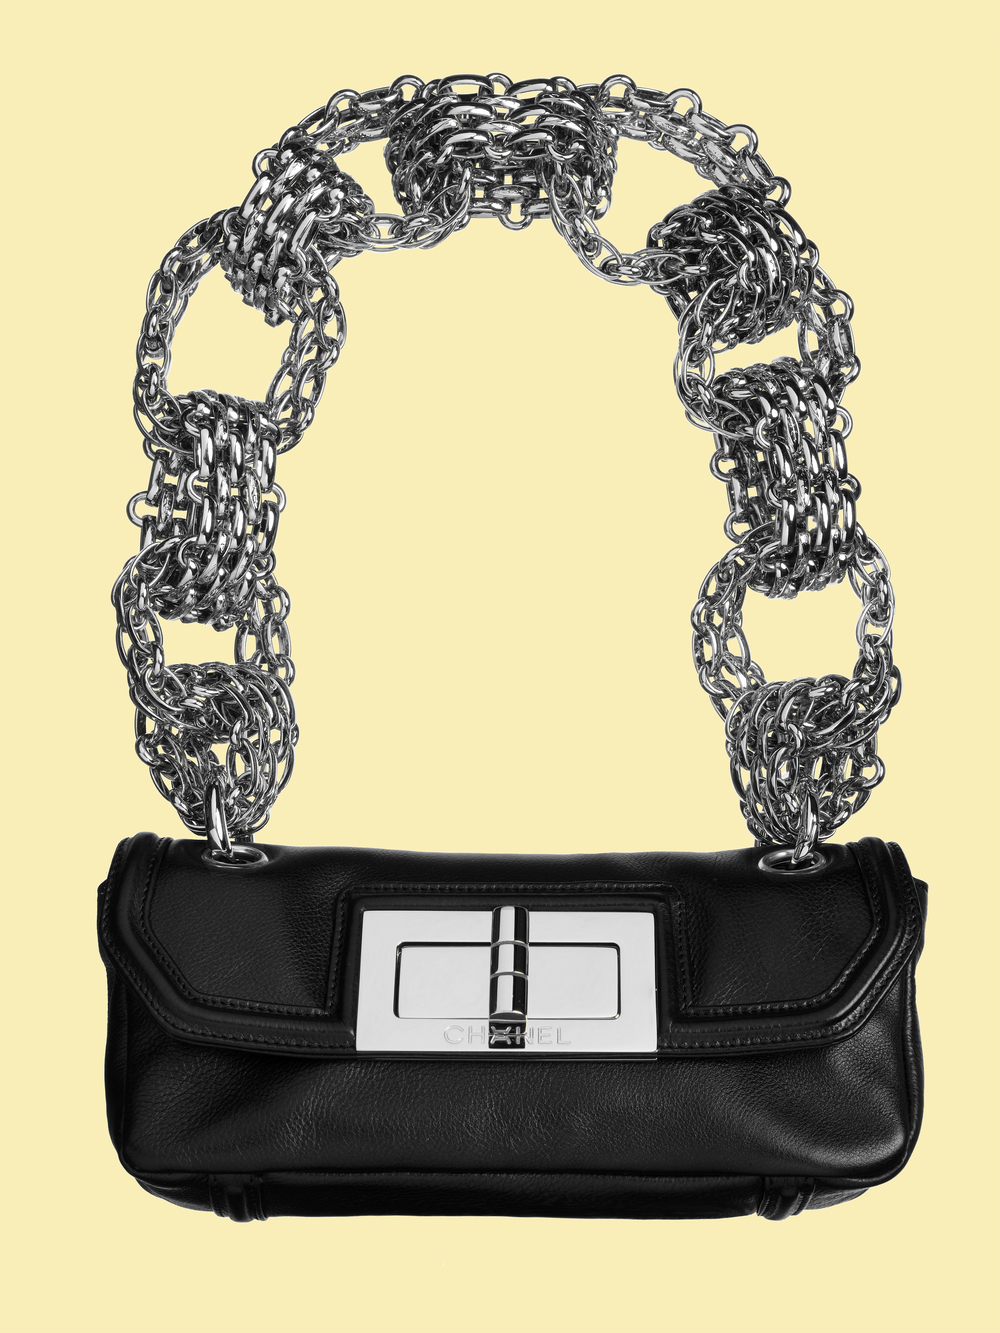 001 CHANEL big chain bag.jpg